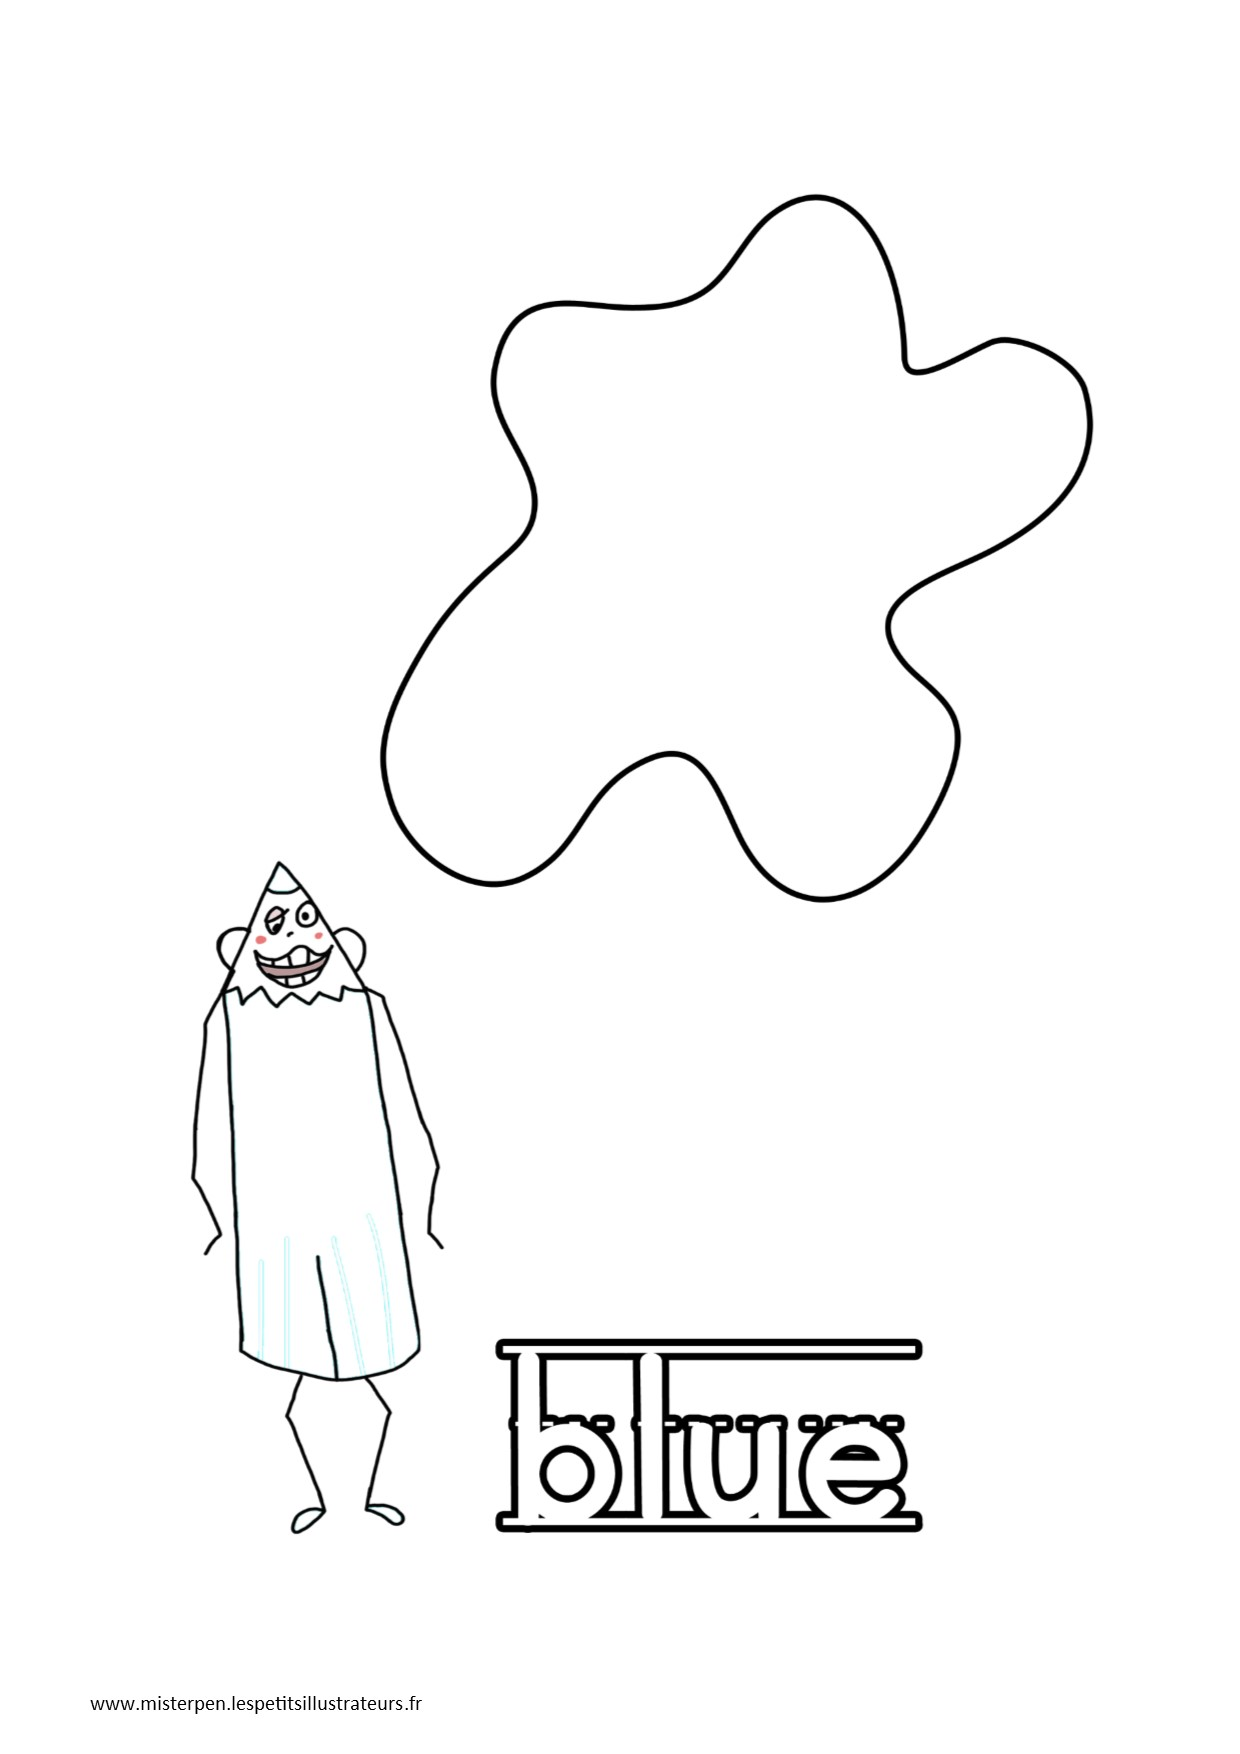 coloriage-couleur-blue.jpg